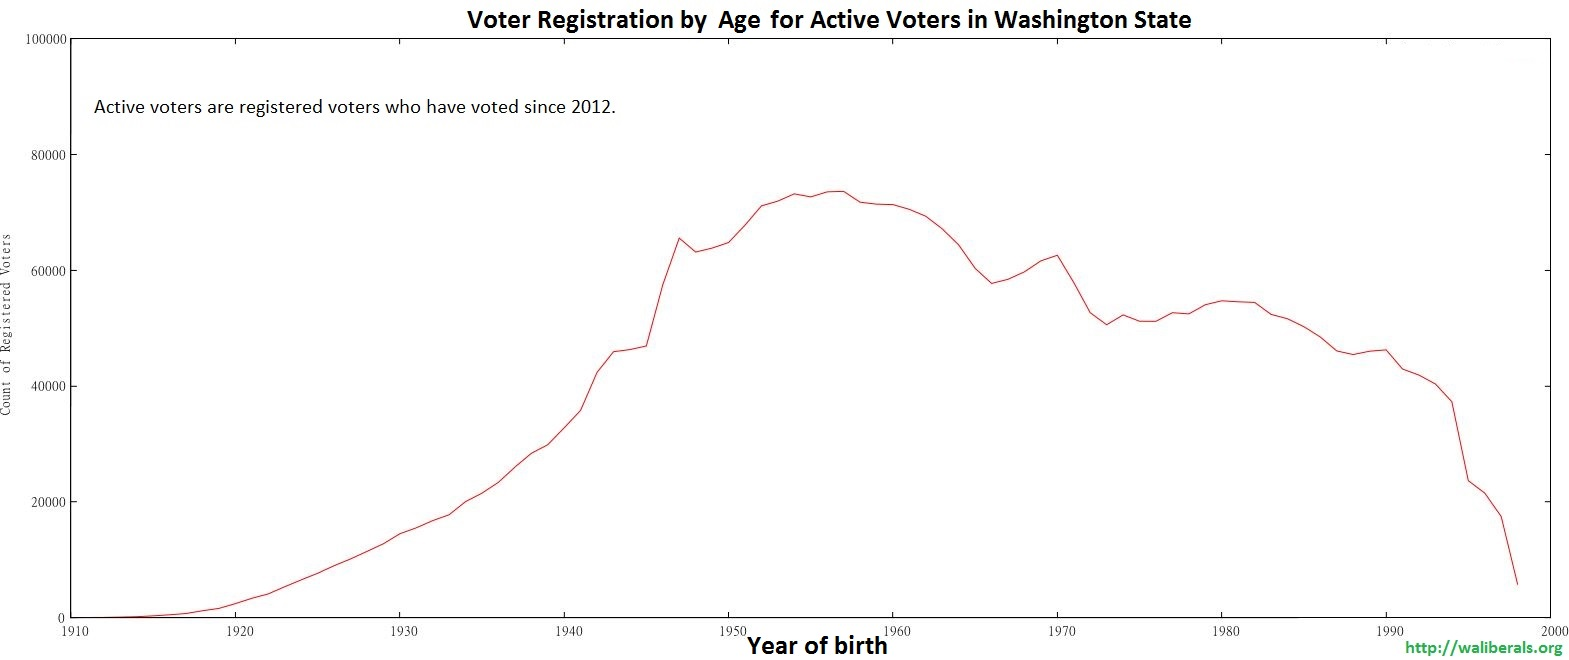 Voter Registration in Washington State, for active voters